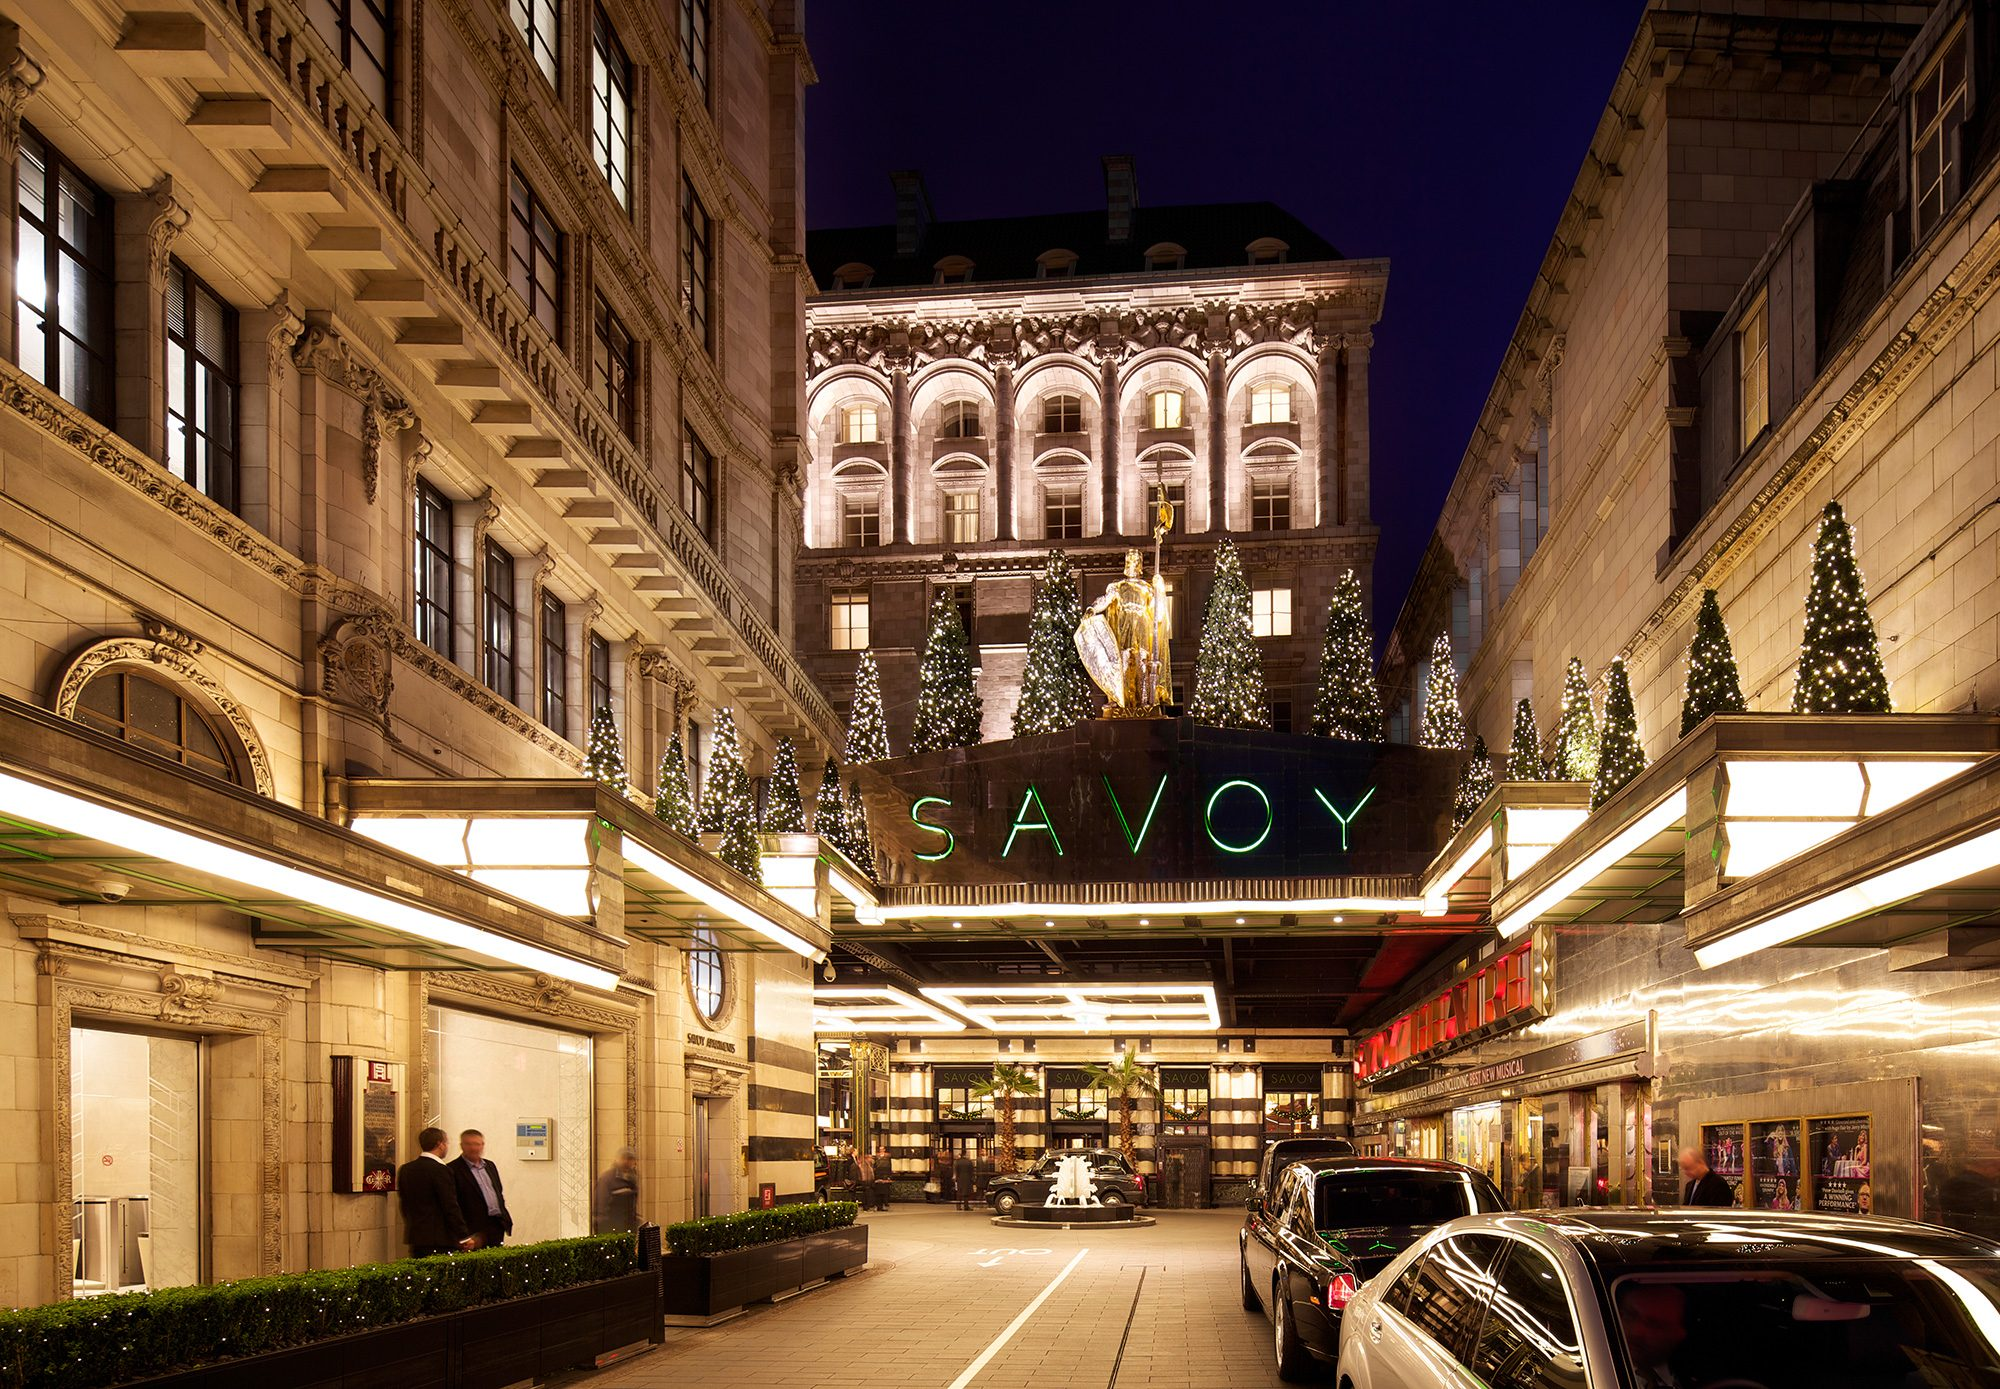 The Savoy main entrance at Christmas night time